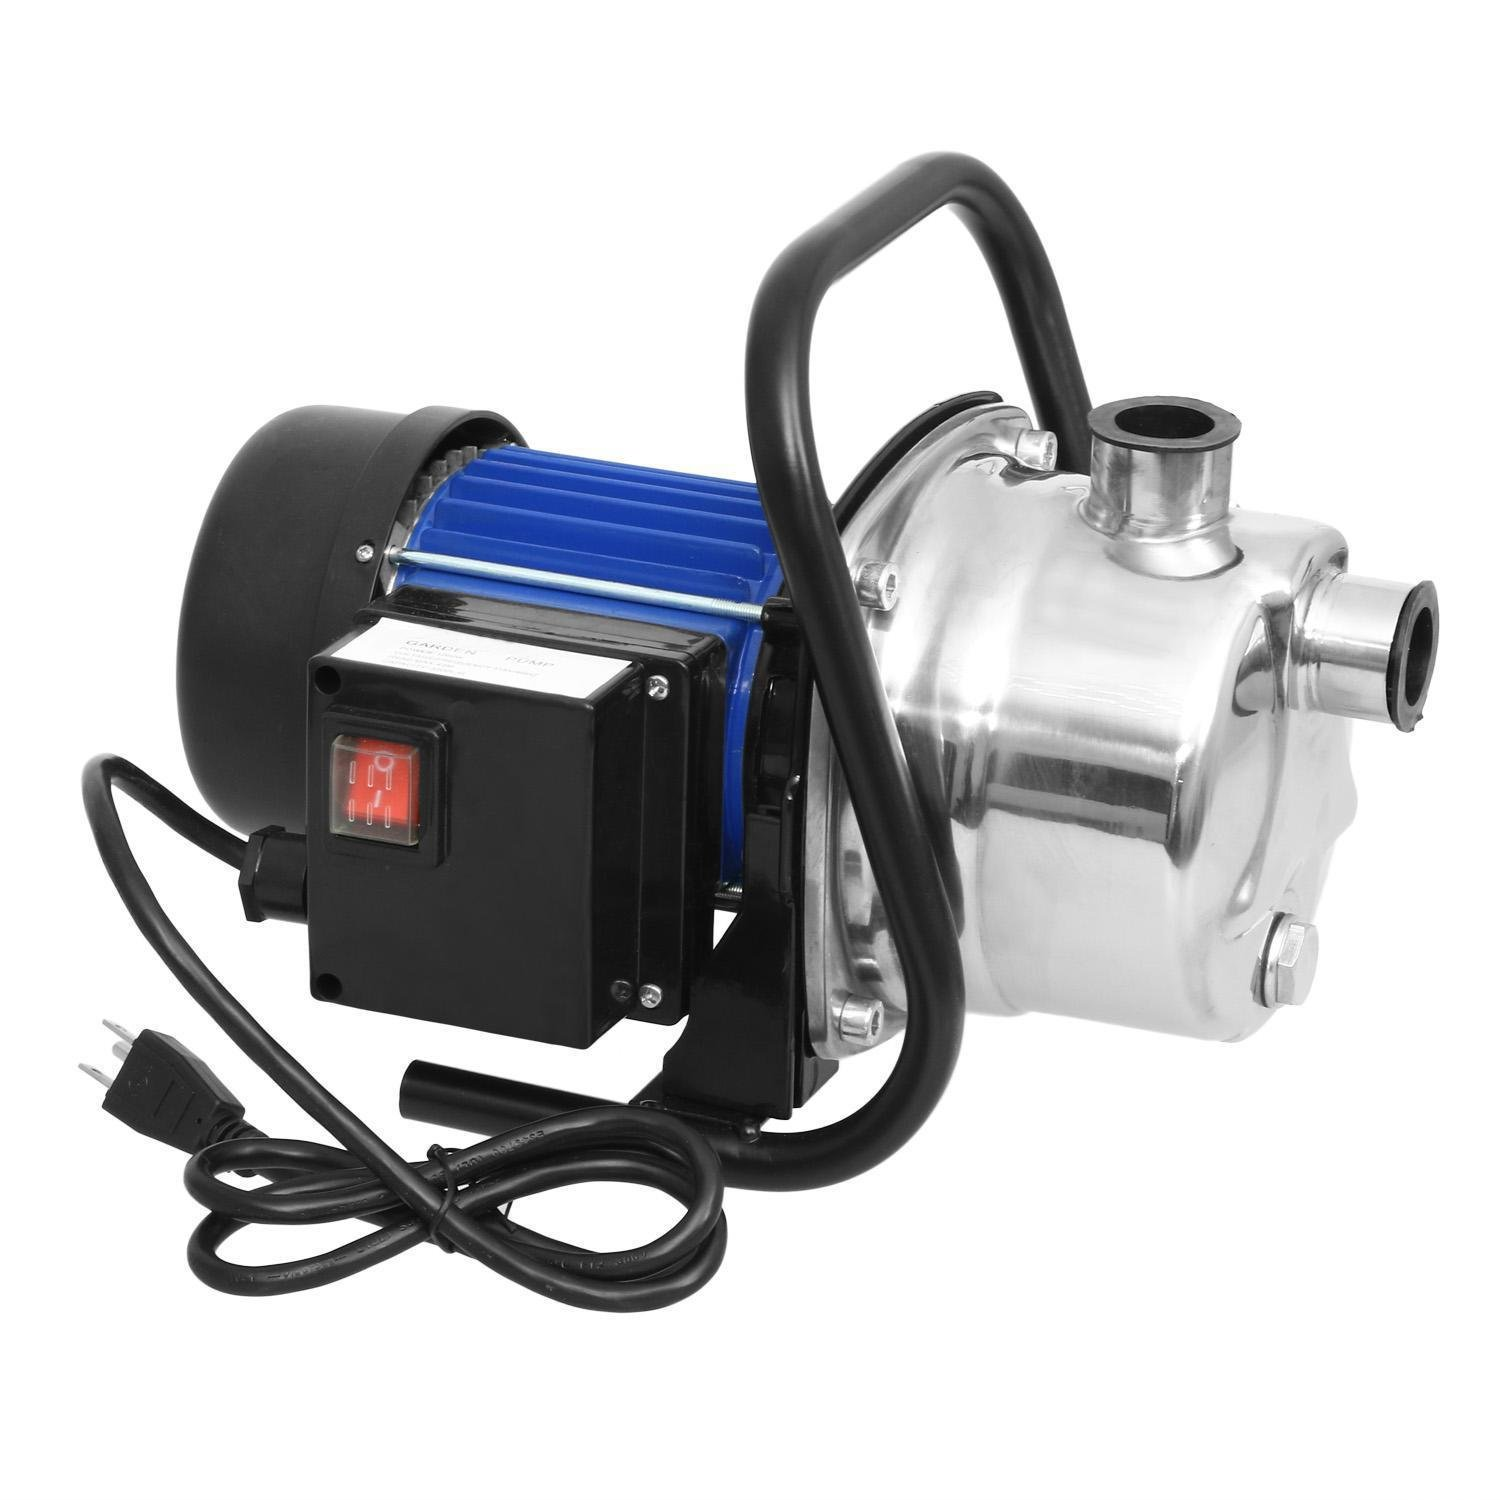 Etuoji Booster Pump Automatic ON/OFF Water Removal Shallow Well Pump for Home Garden Irrigation and Water Transport